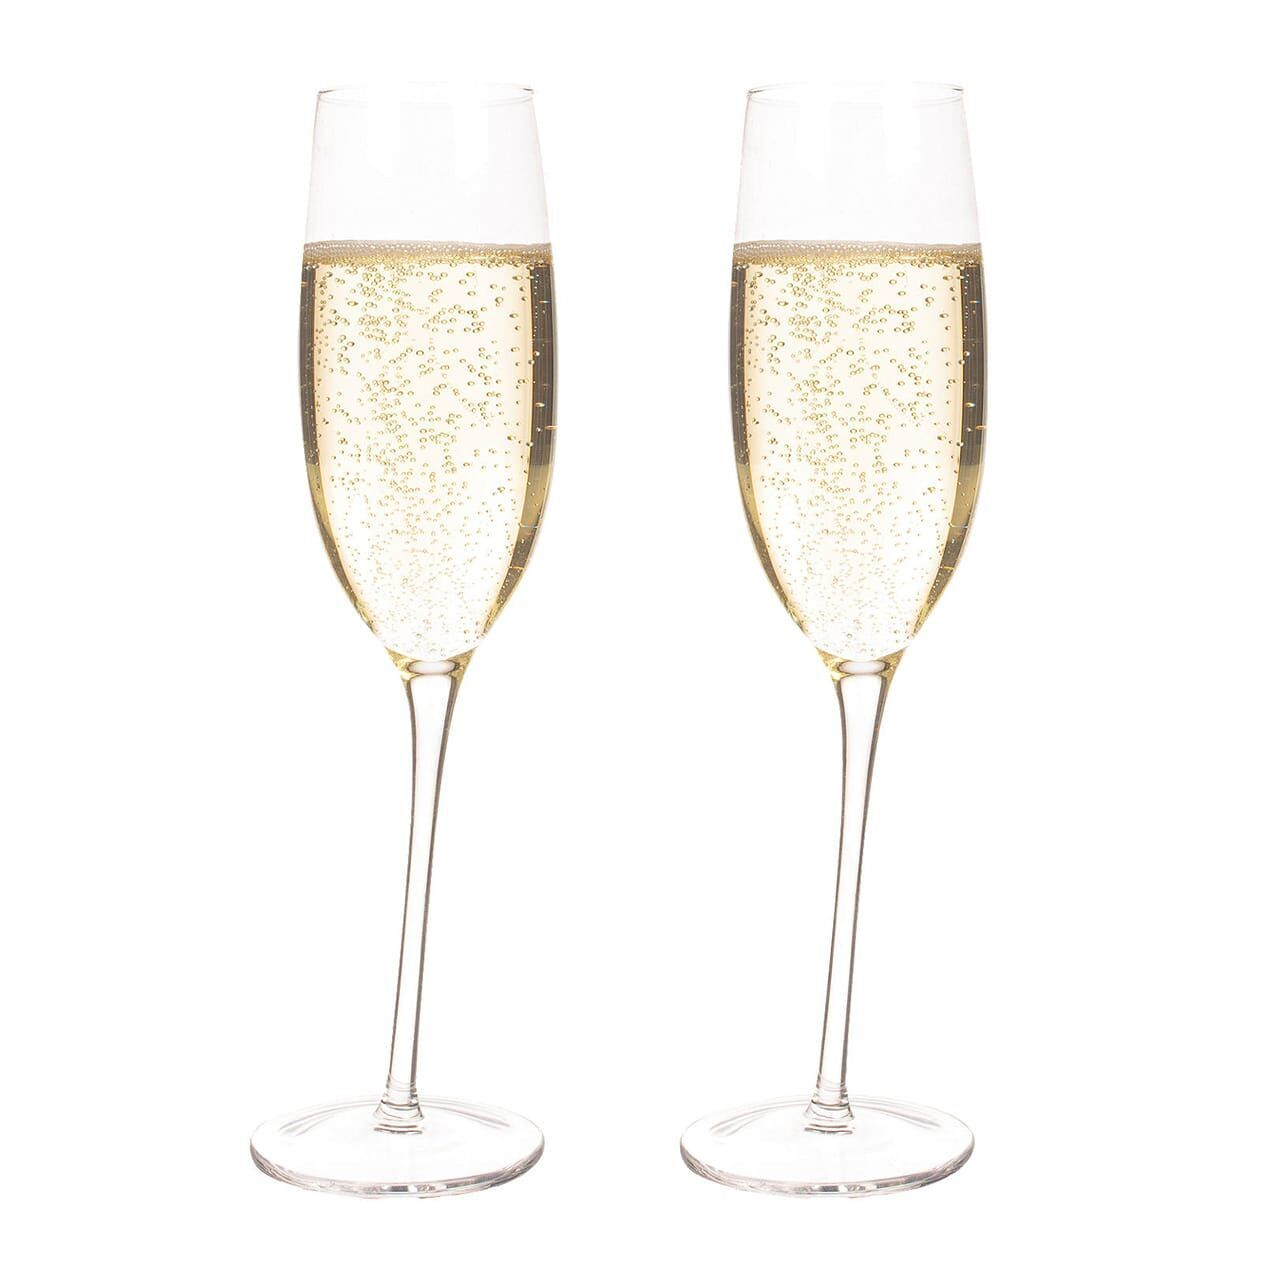 Bar Bespoke Tipsy Fizz Glasses (2pk)